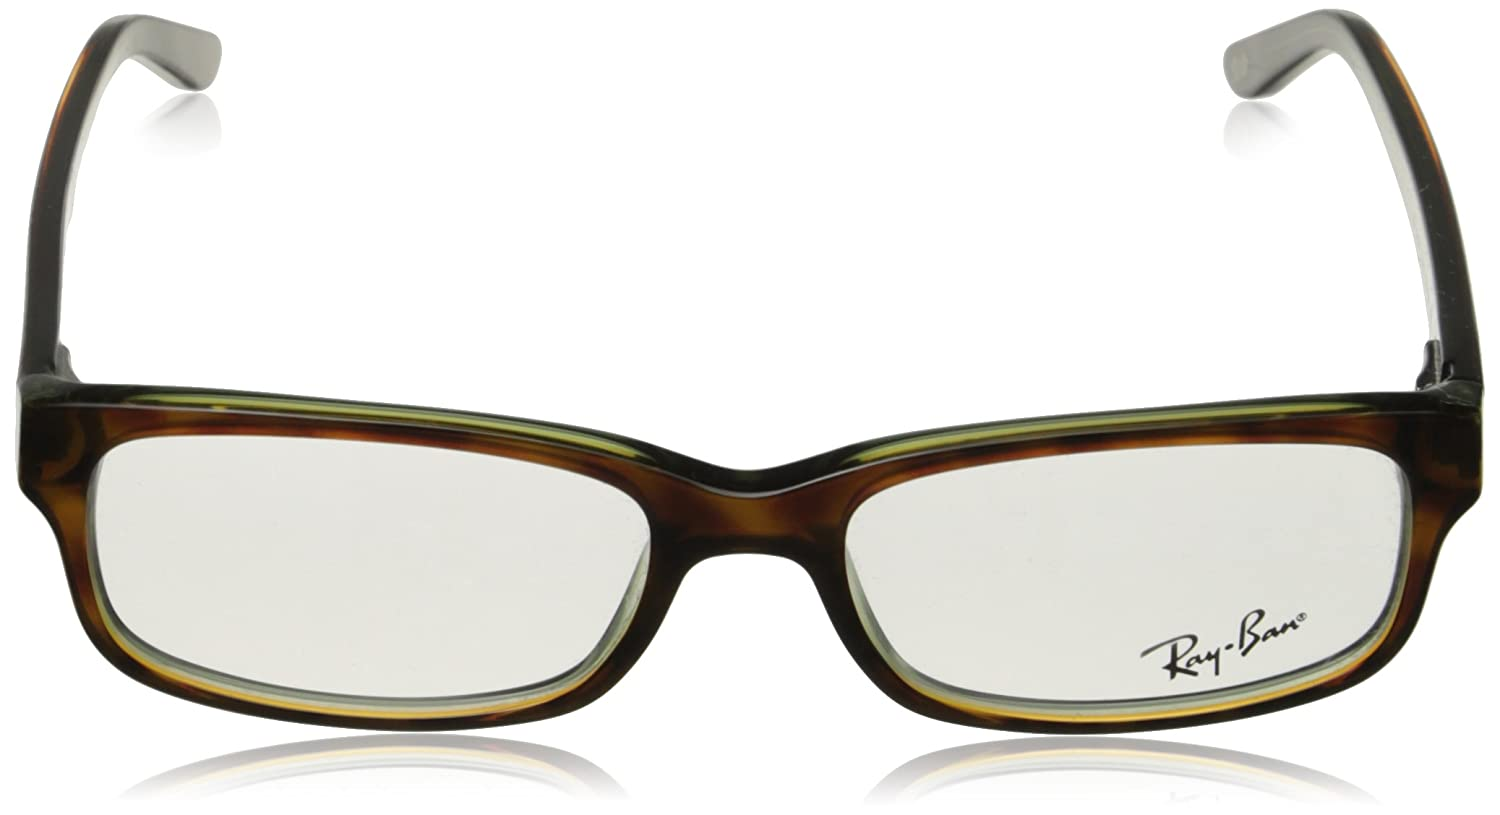 393ef1a6ba Ray Ban 5206 2442 « One More Soul